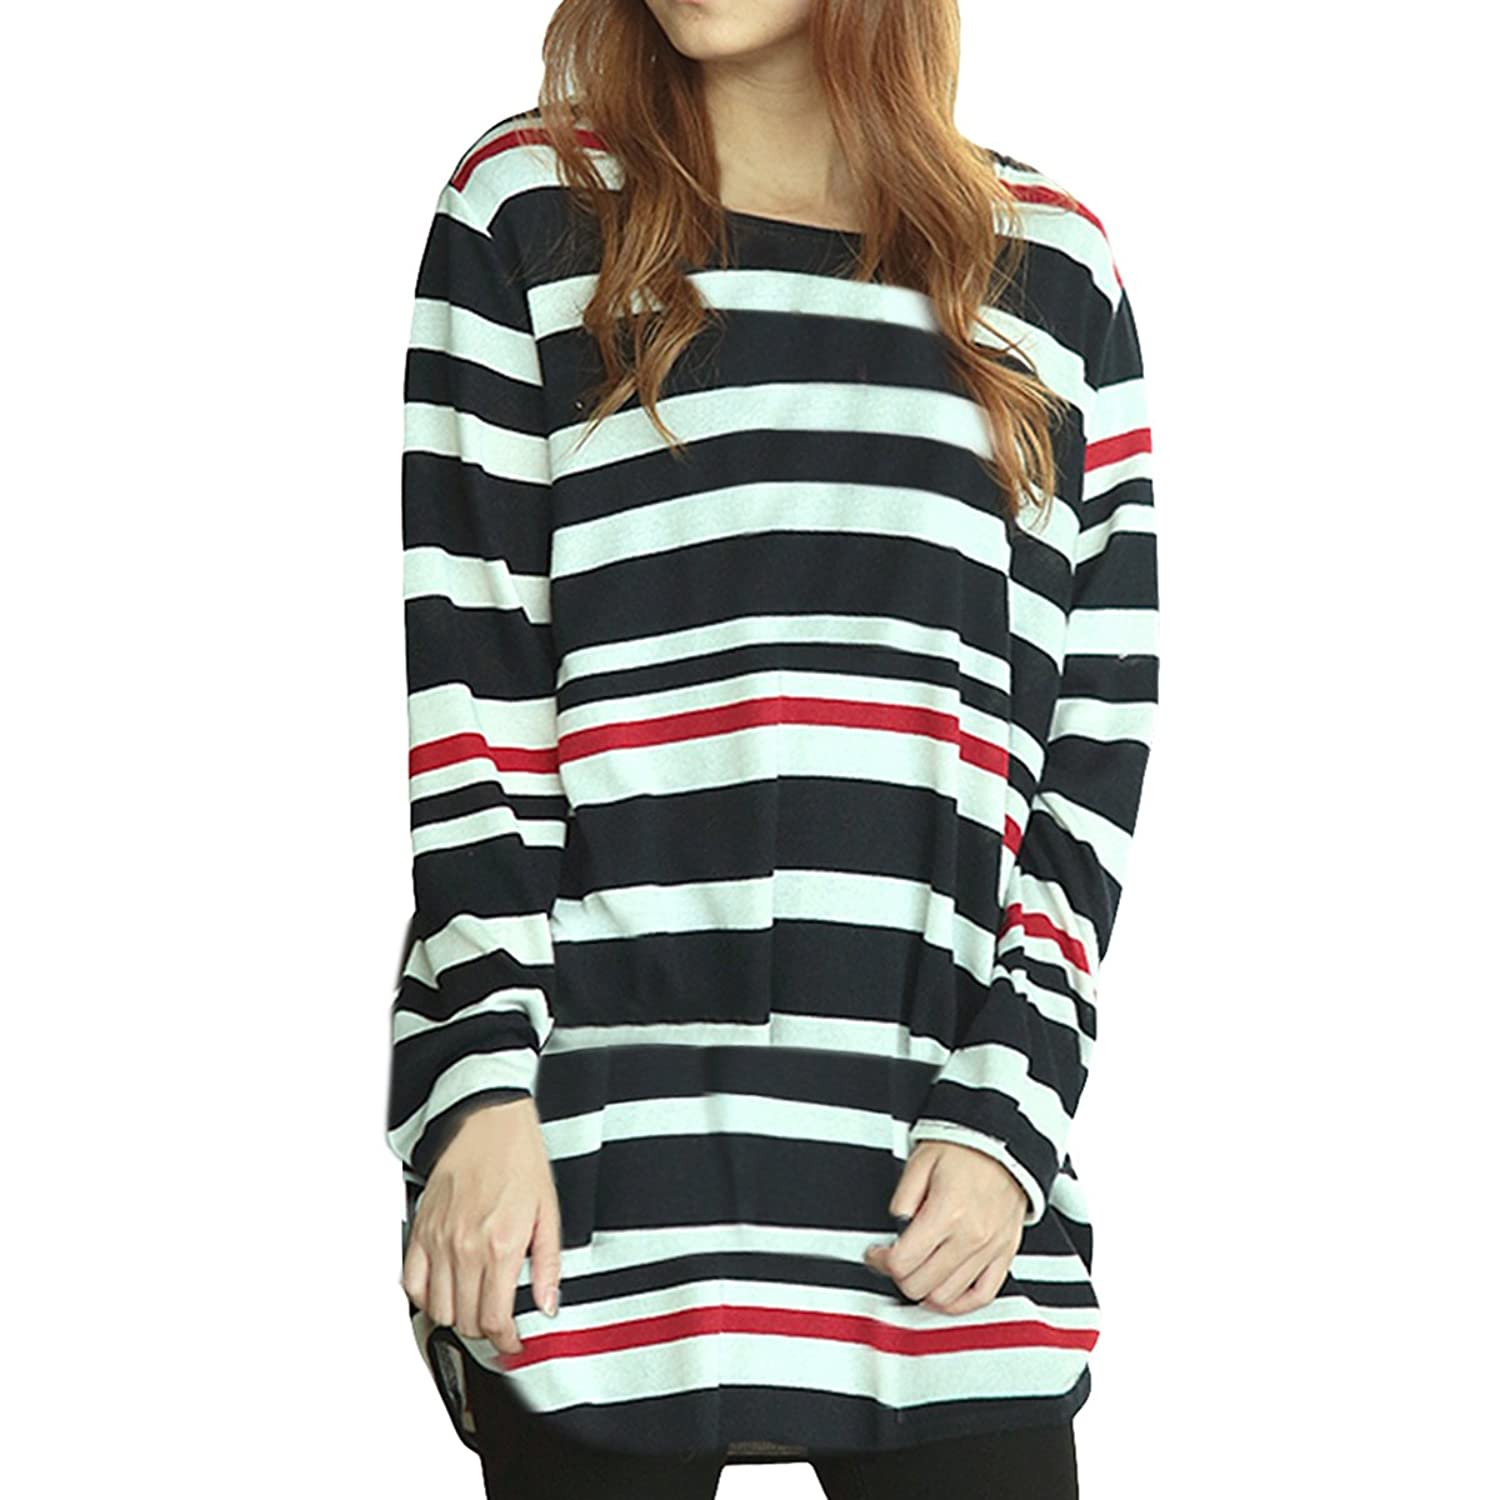 E.JAN1ST Women's Pullover Sweater Long Sleeve Crewneck Patterned Knit Tops Shirts